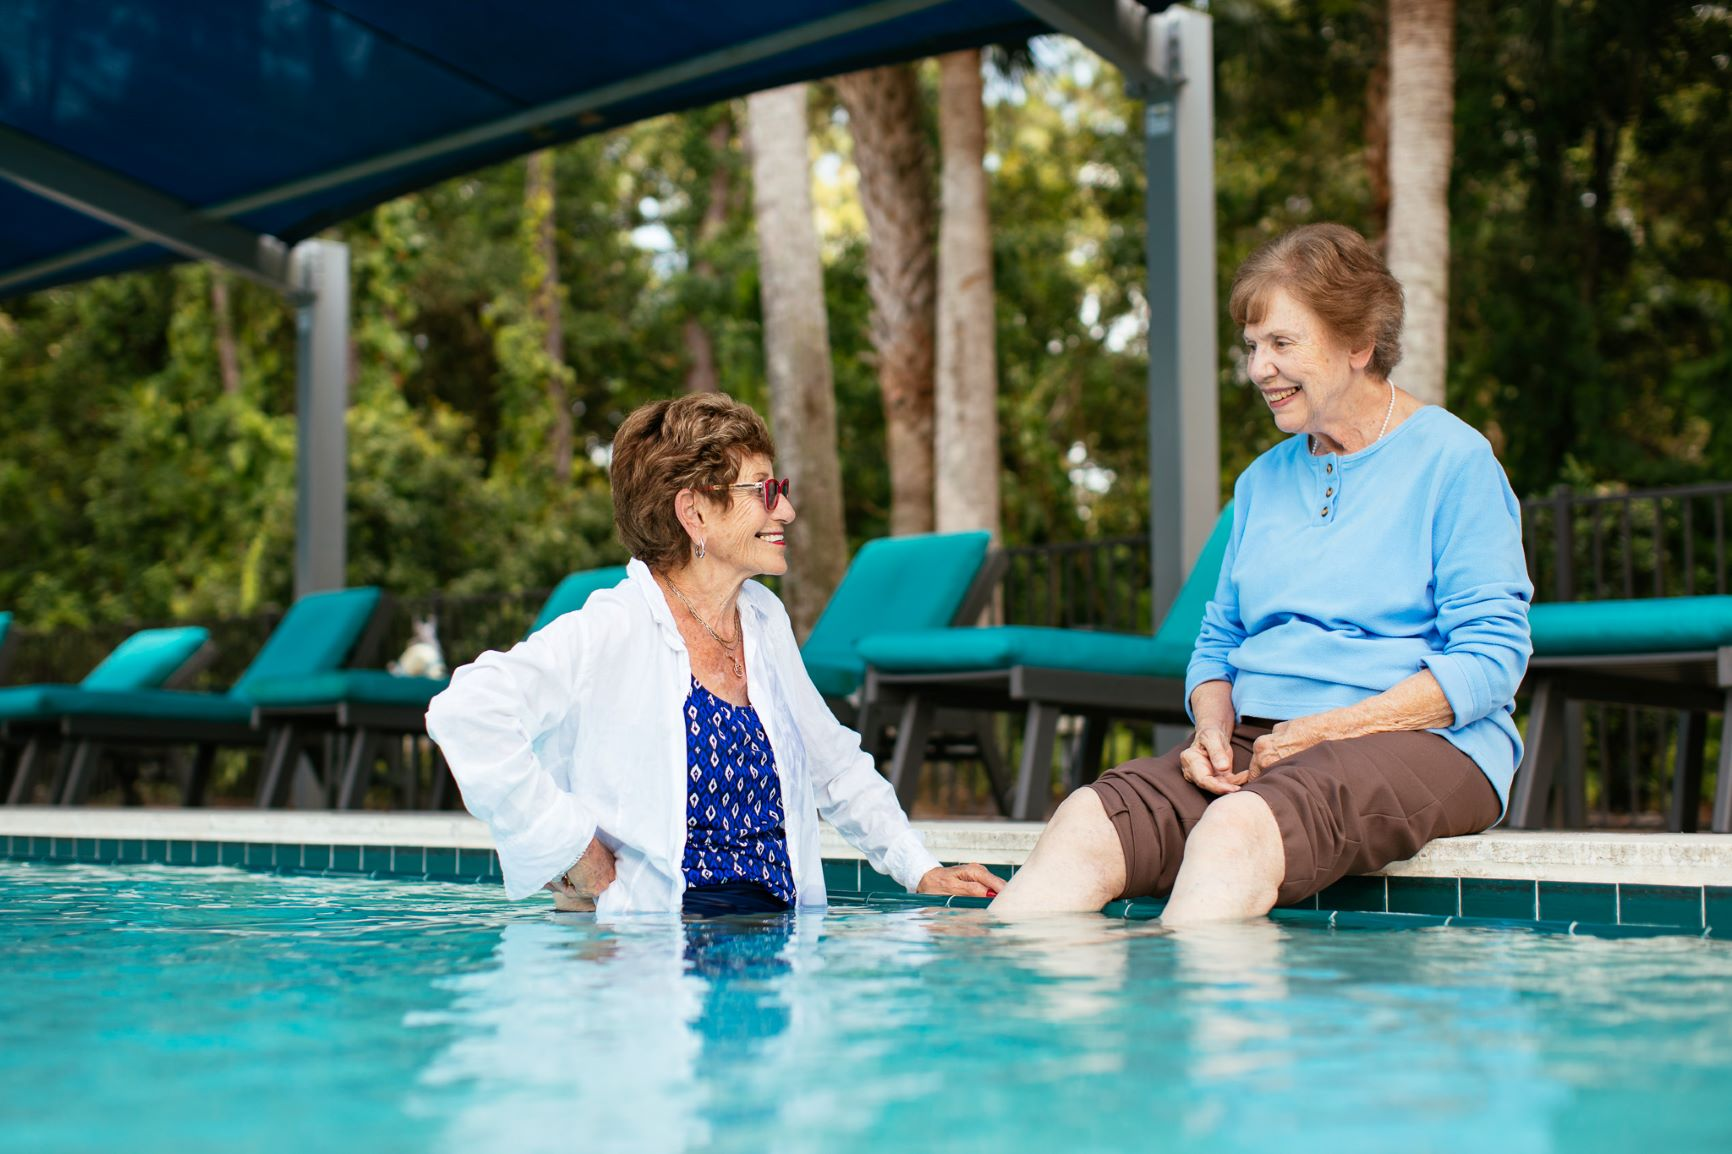 Aviva Senior Living swimming pool with two women talking.